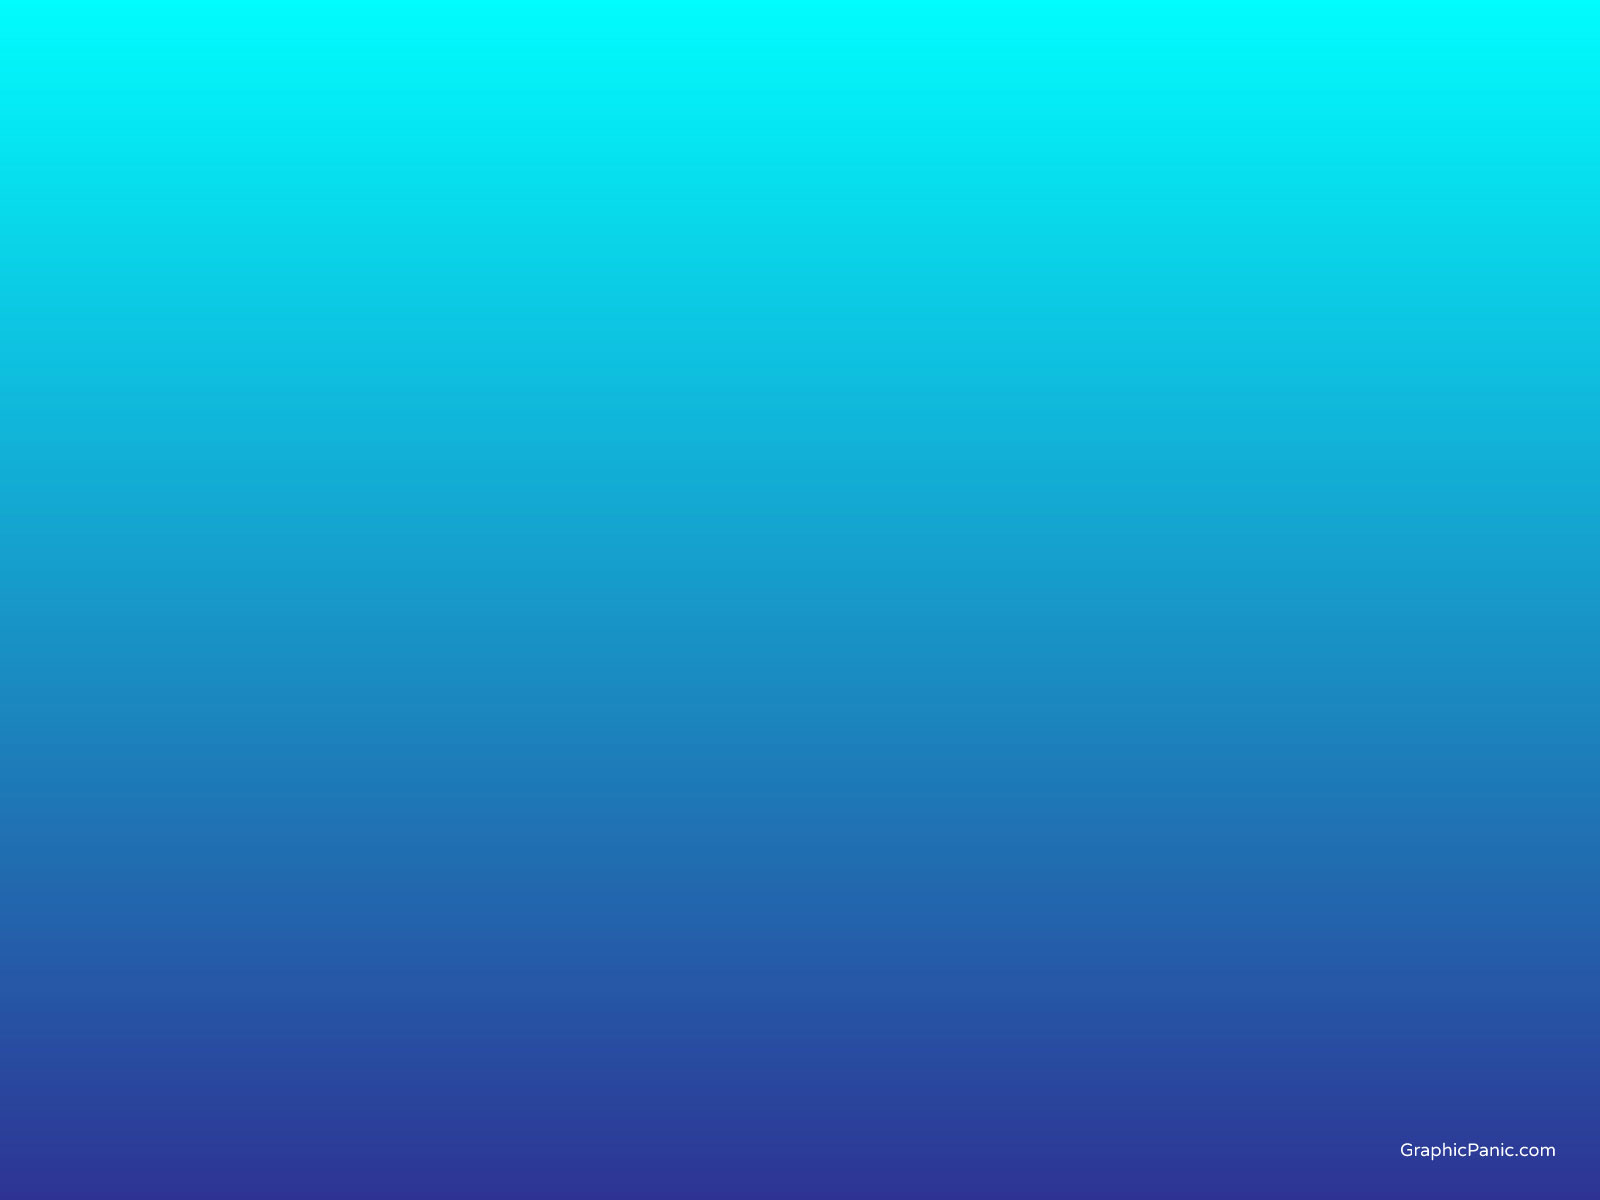 wallpaper background gradient blue - photo #20